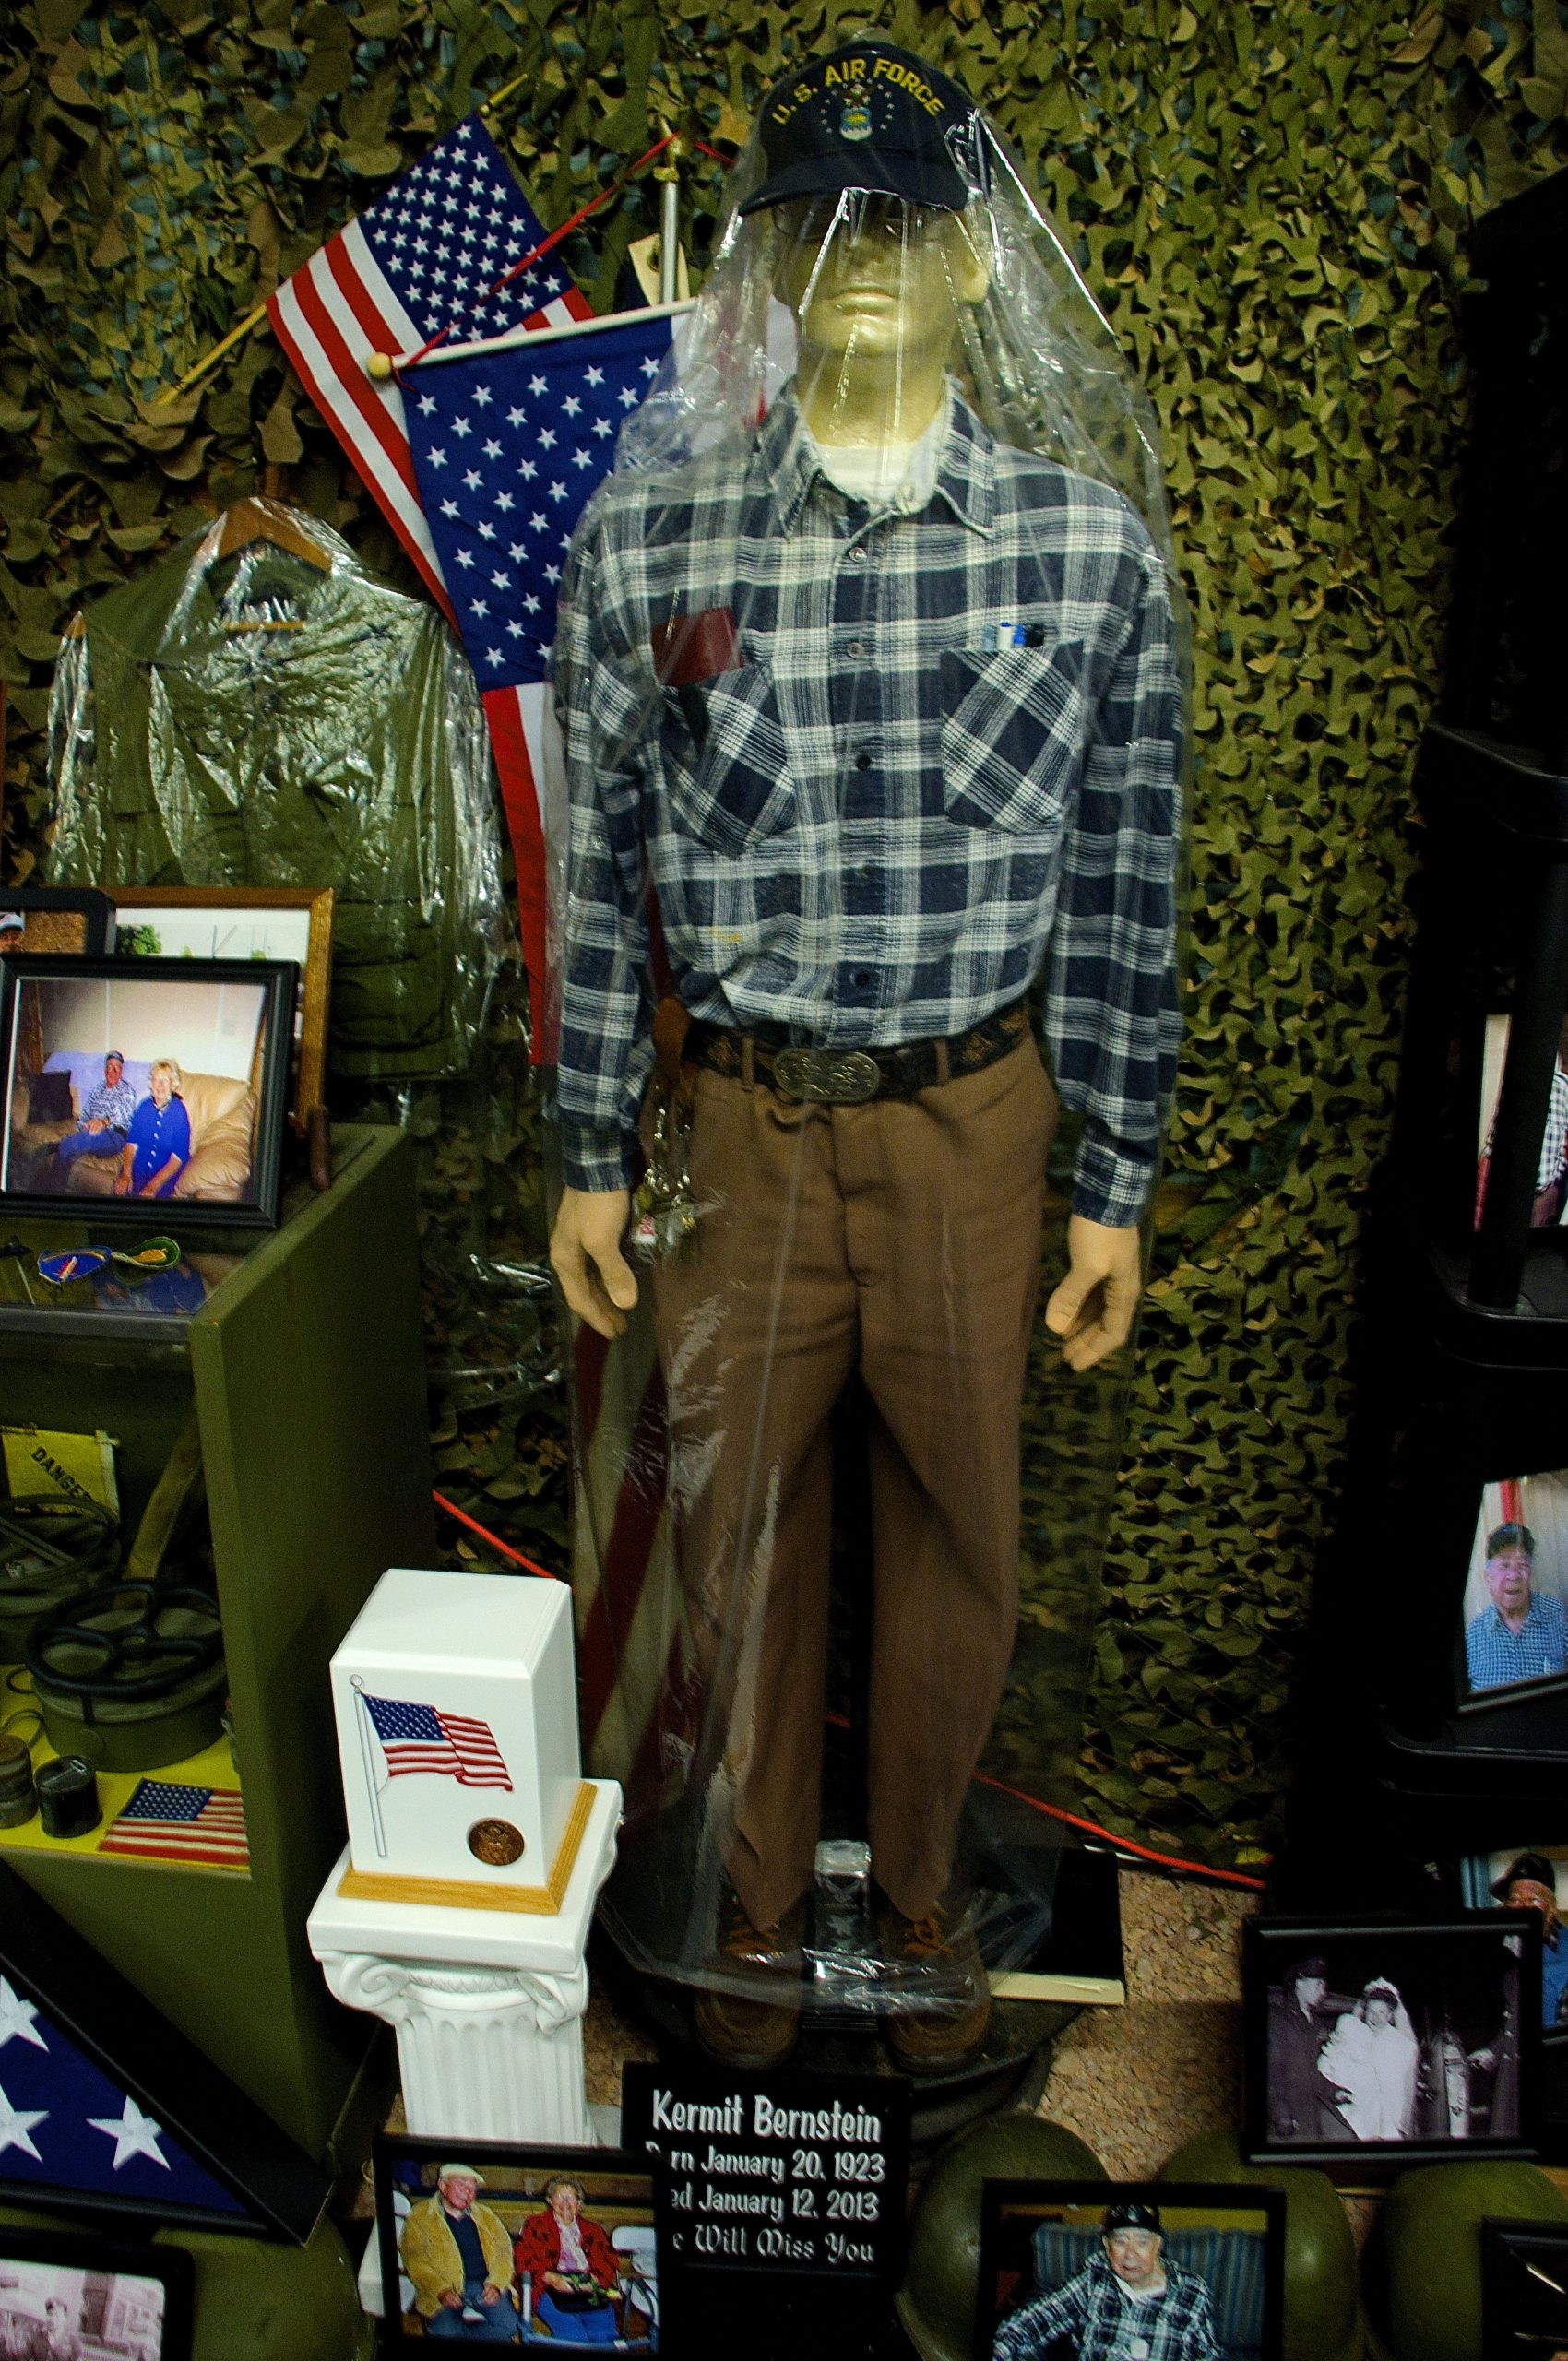 Shrine to Dragonman's father, Kermit Bernstein, inside the military museum